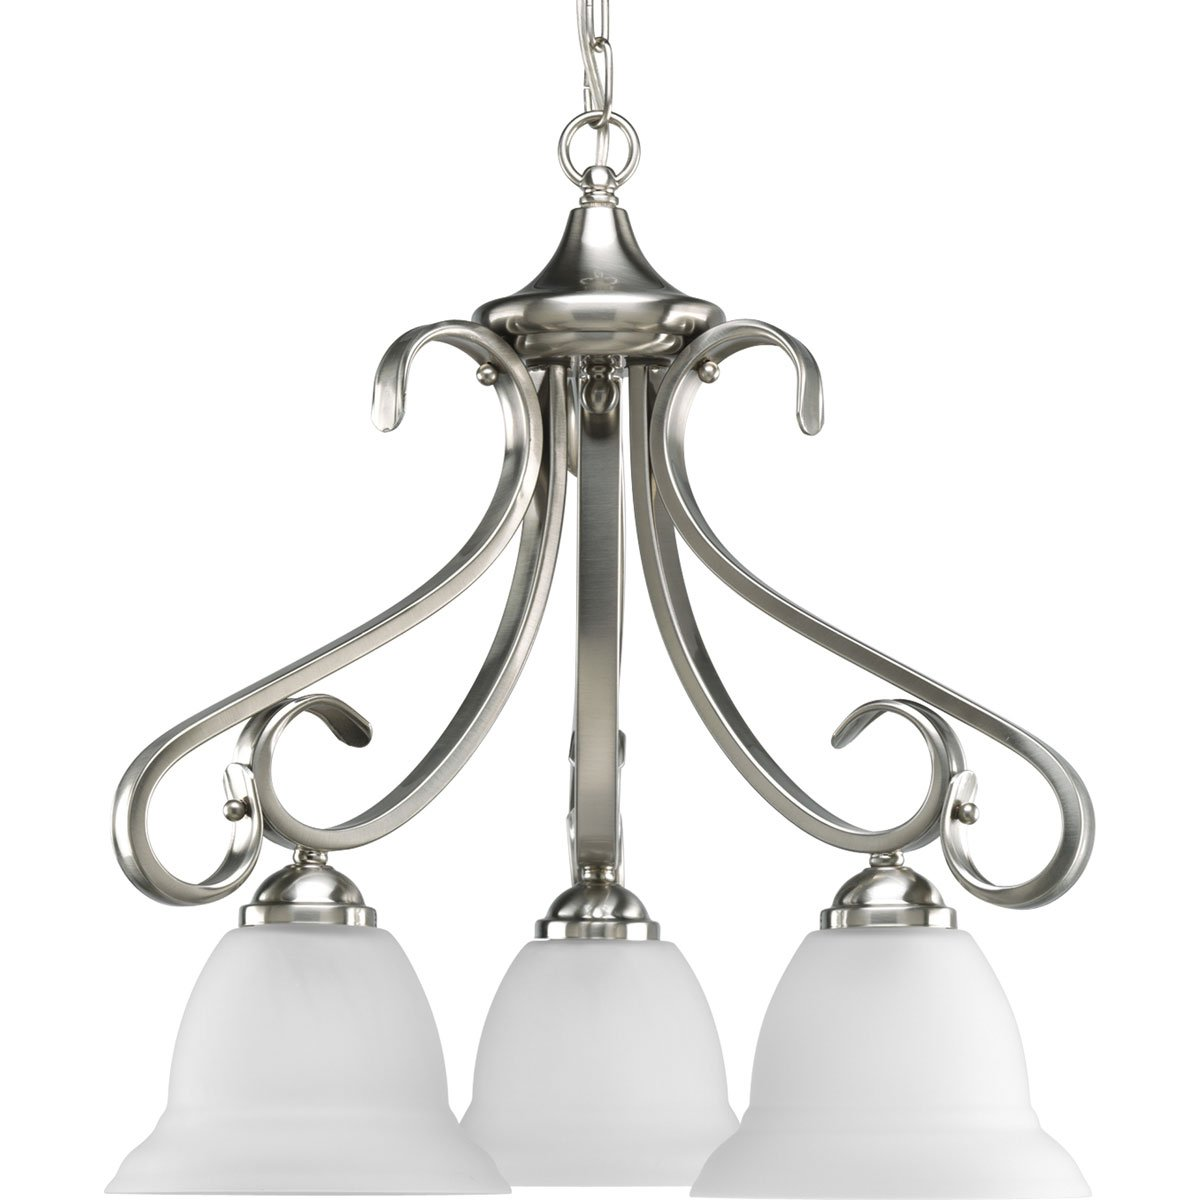 Progress lighting p4405 09 3 light chandelier with etched white bell progress lighting p4405 09 3 light chandelier with etched white bell shaped glass bowls and squared scrolls and arms brushed nickel amazon aloadofball Gallery